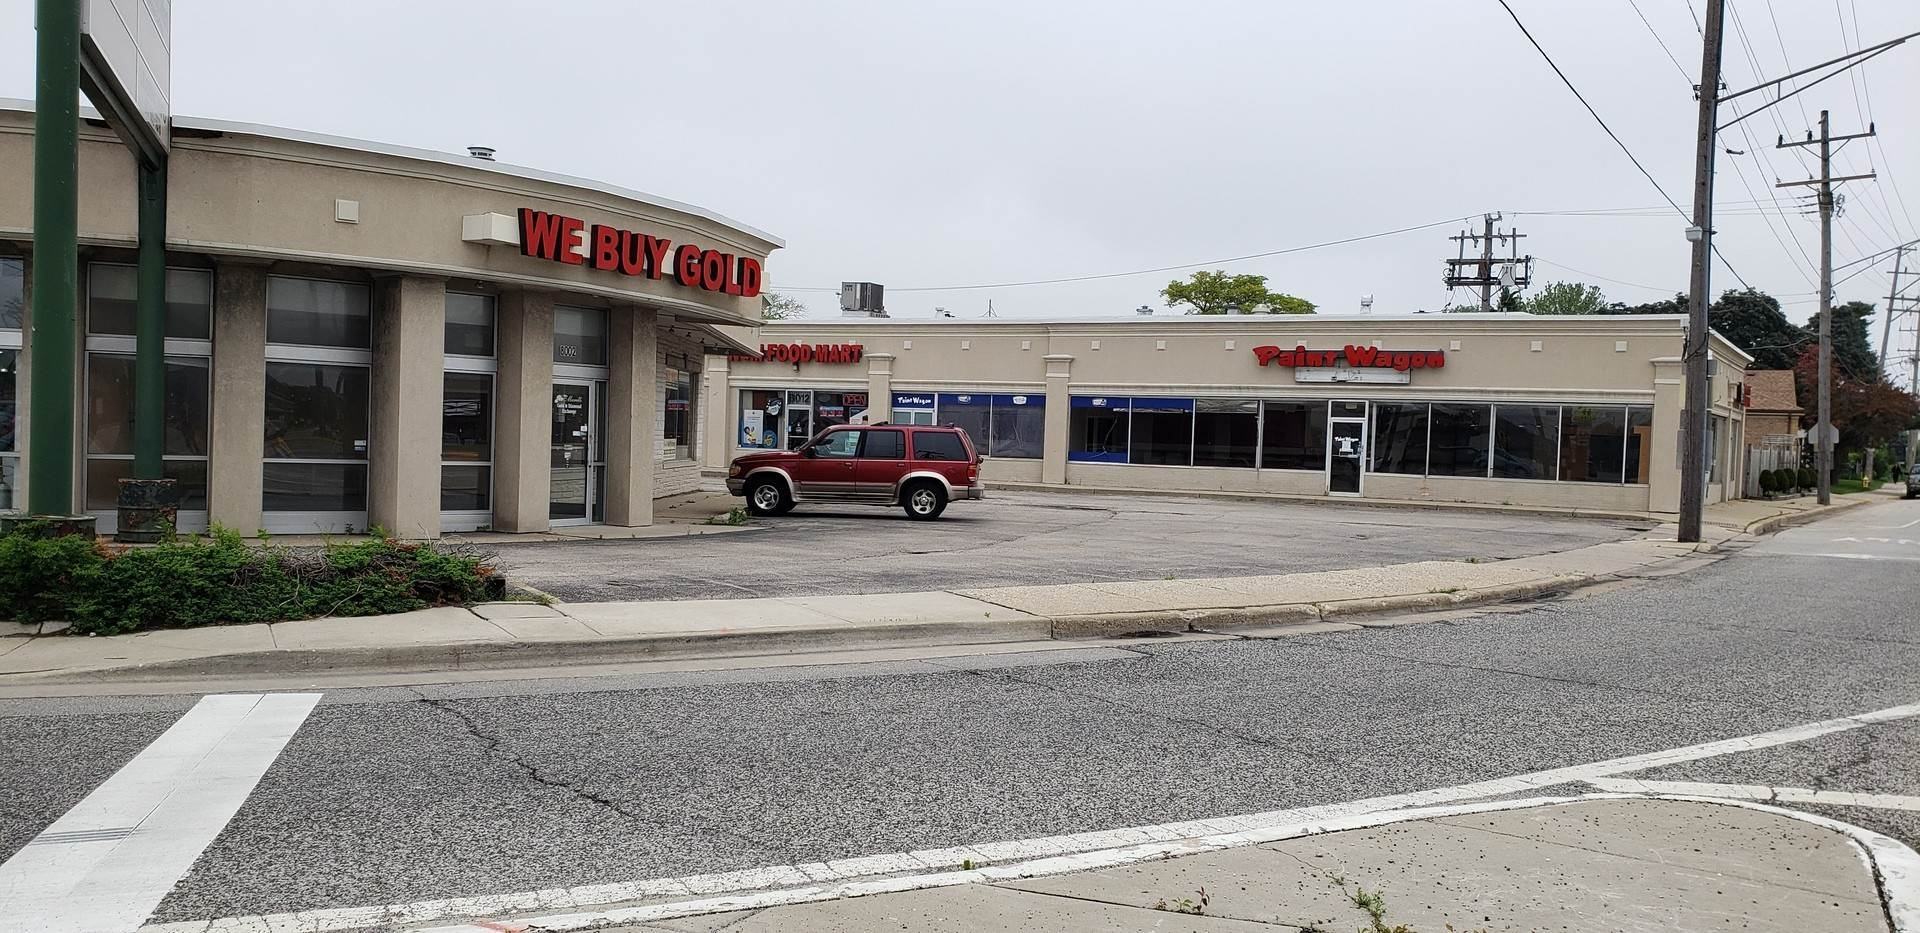 Commercial for Sale at 8000 N Waukegan Road Niles, Illinois 60714 United States